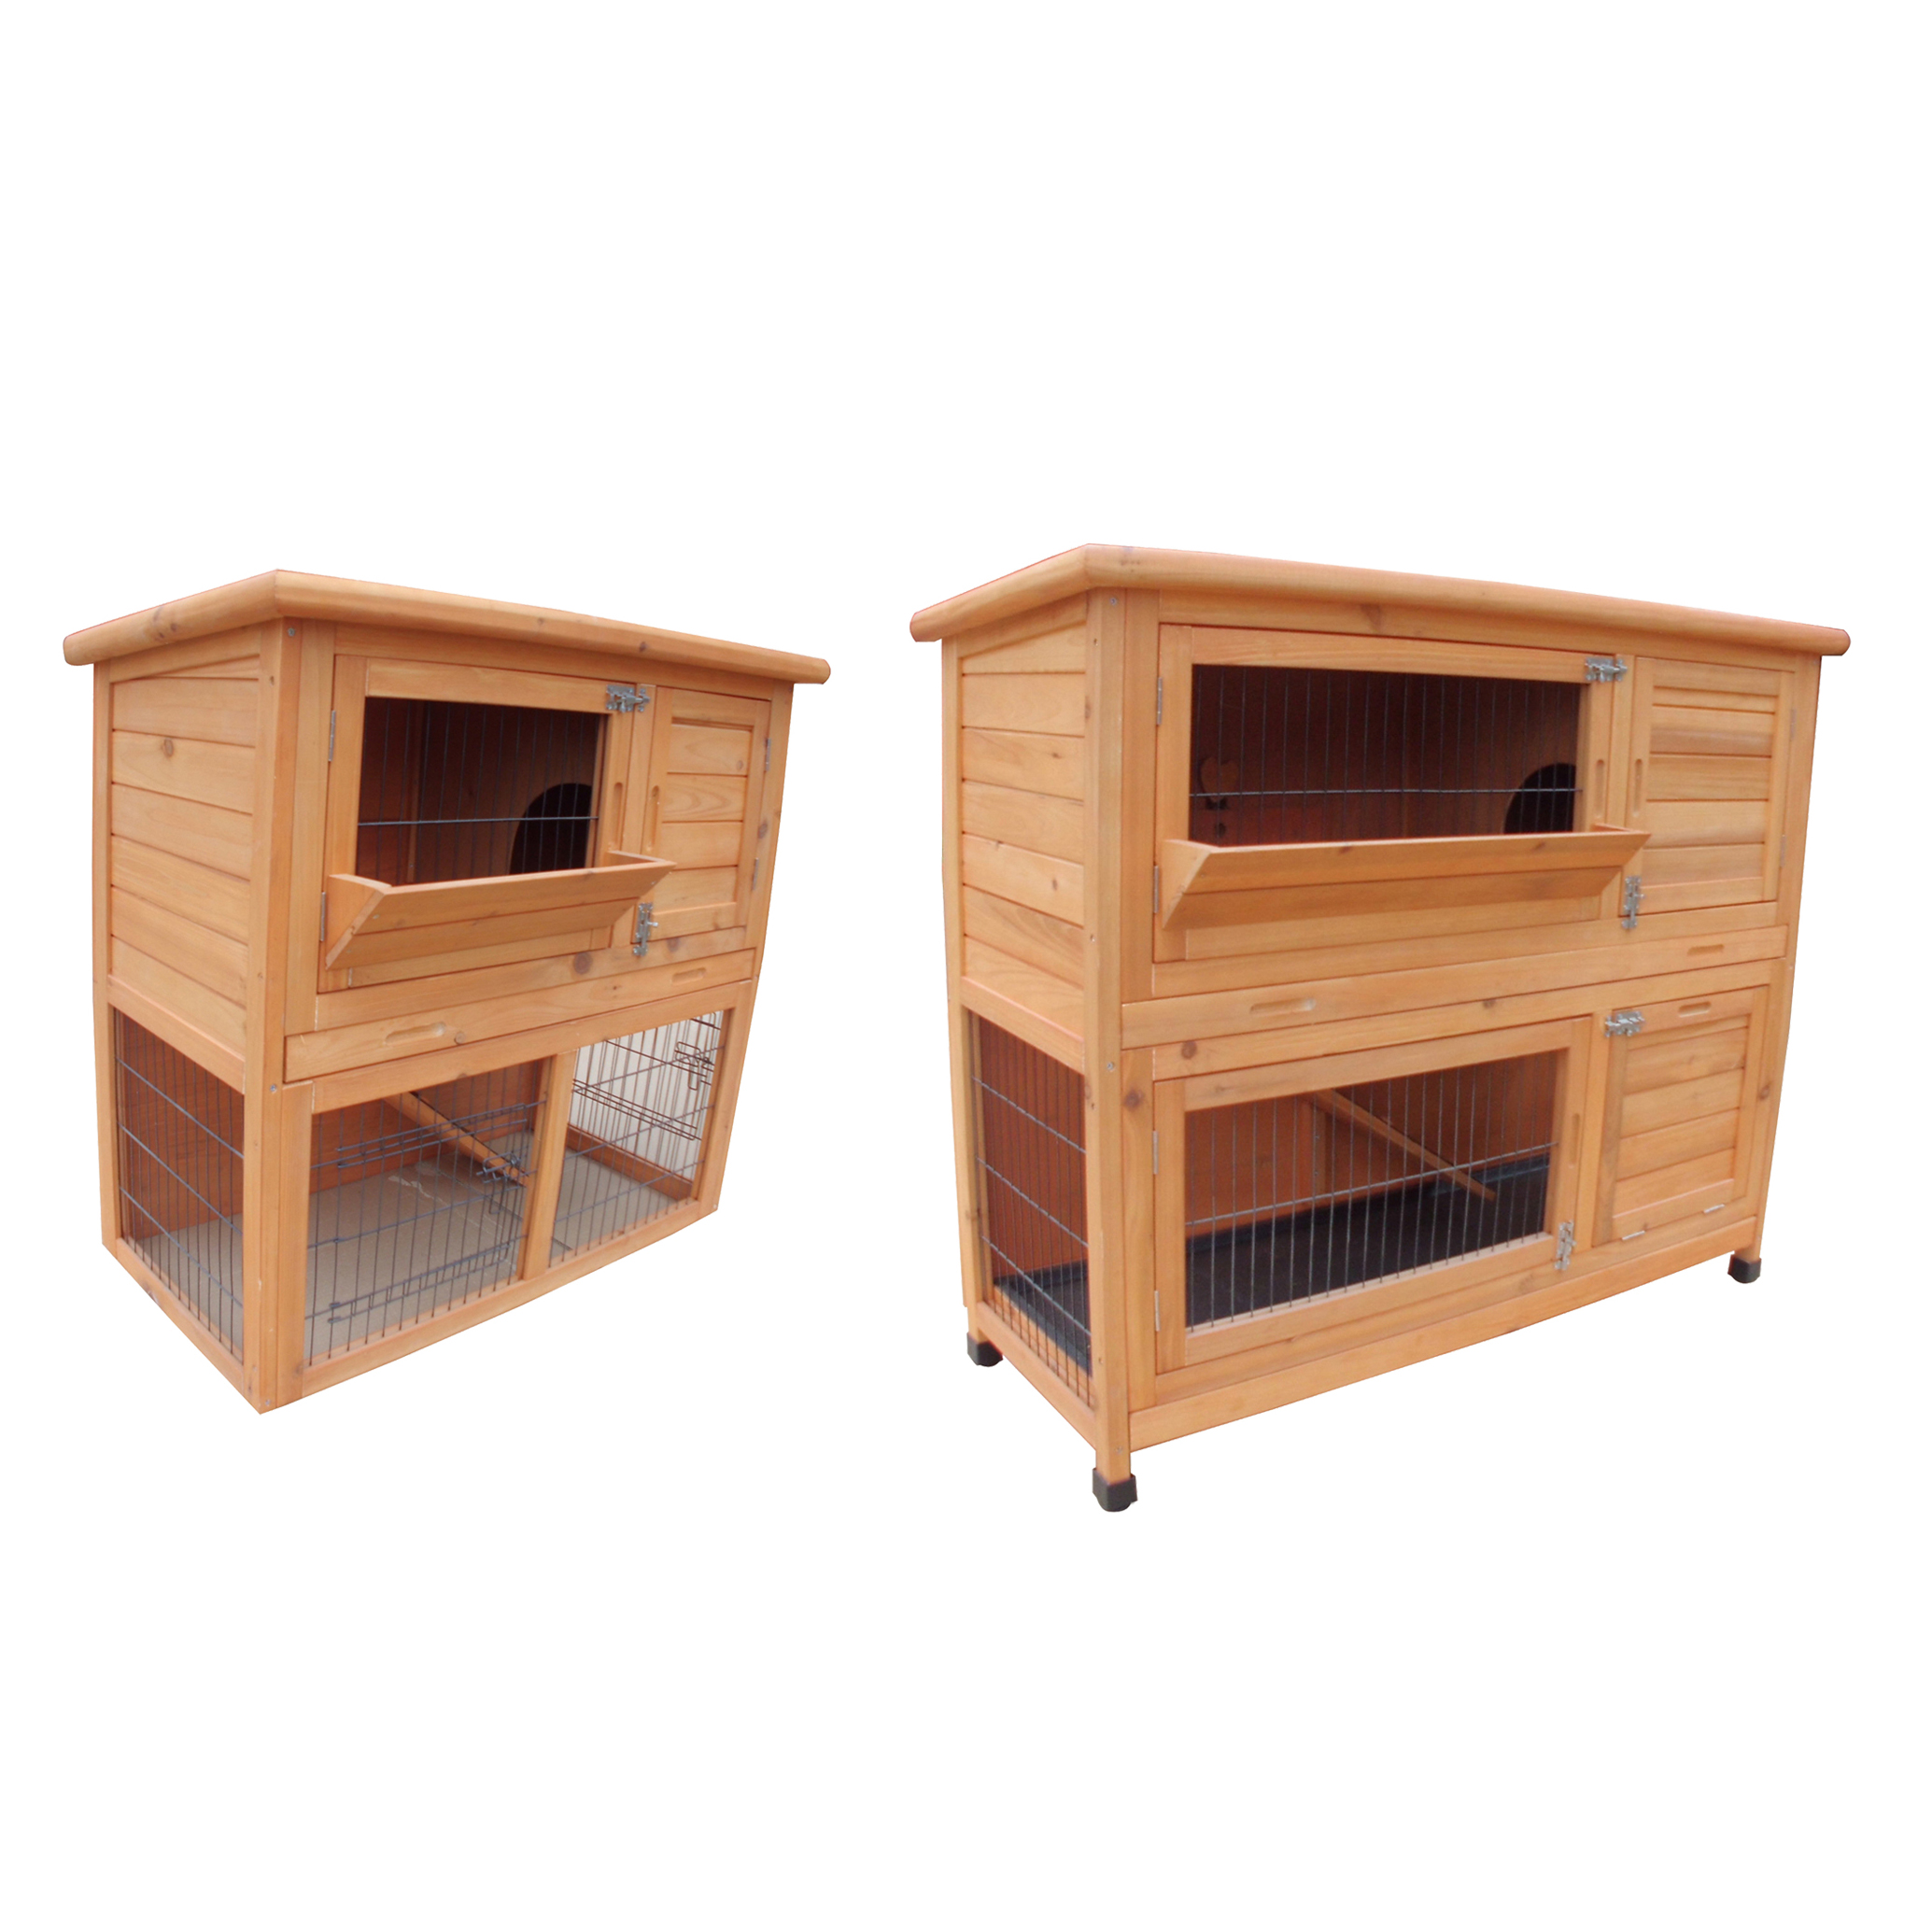 Foxhunter Wooden Guinea Pig Rabbit Hutch Wood Pet Run